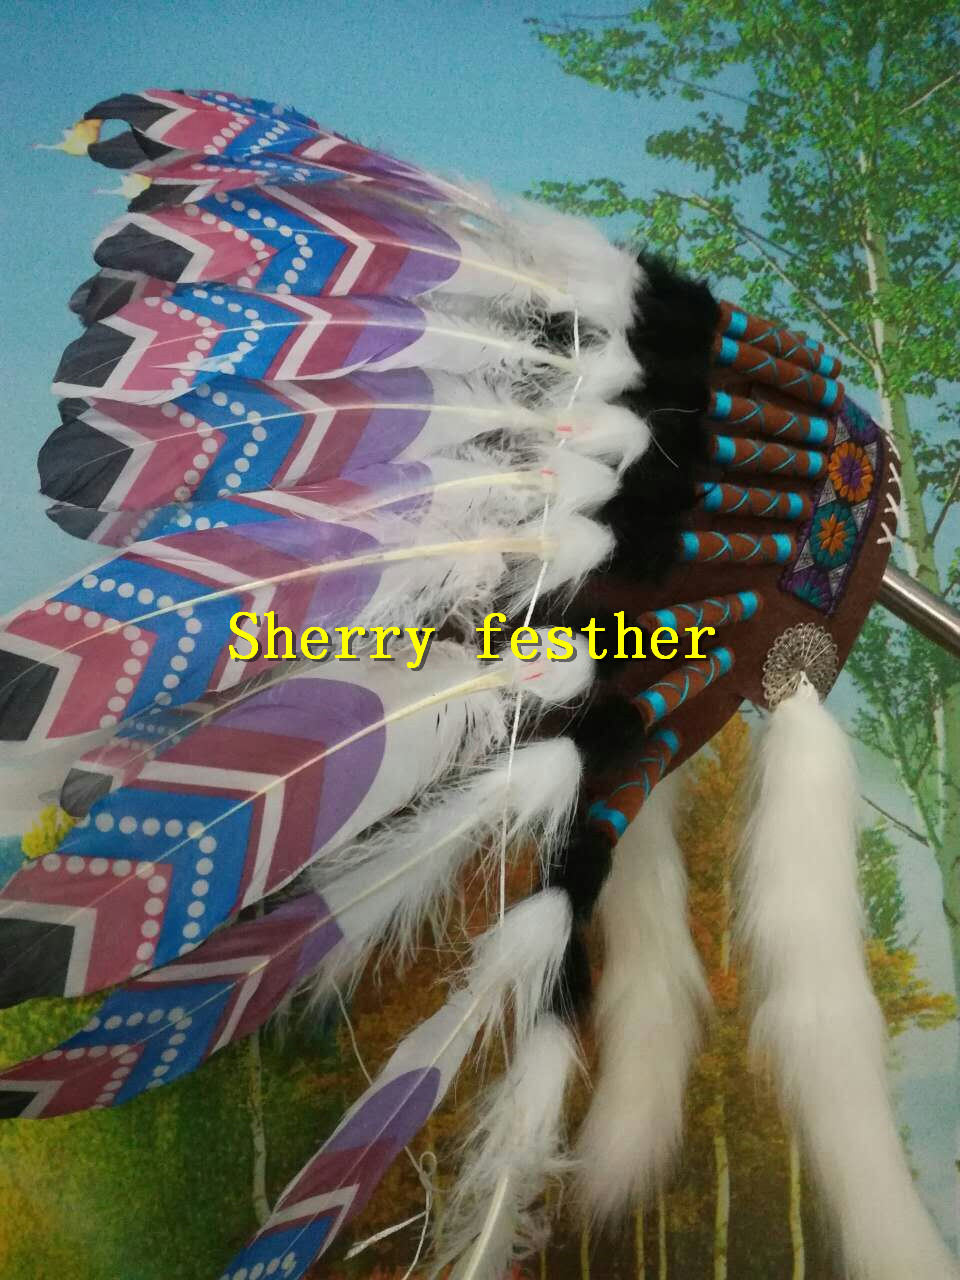 21inch Feather headdress feather headpiece headband costume for halloween dancewear costume decor